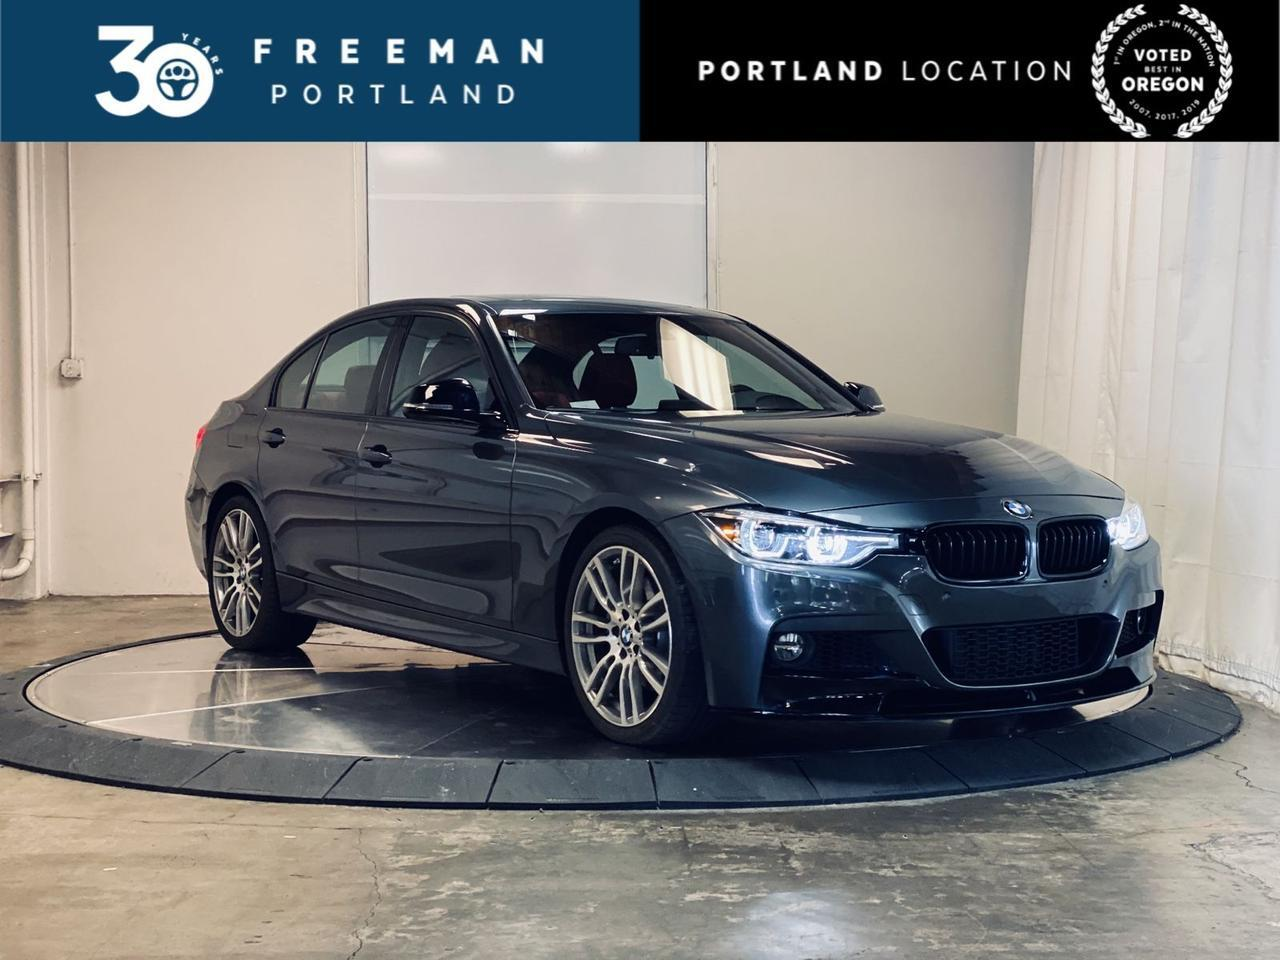 2017 BMW 340i M Sport Red Interior Bang & Olufsen Sound Portland OR